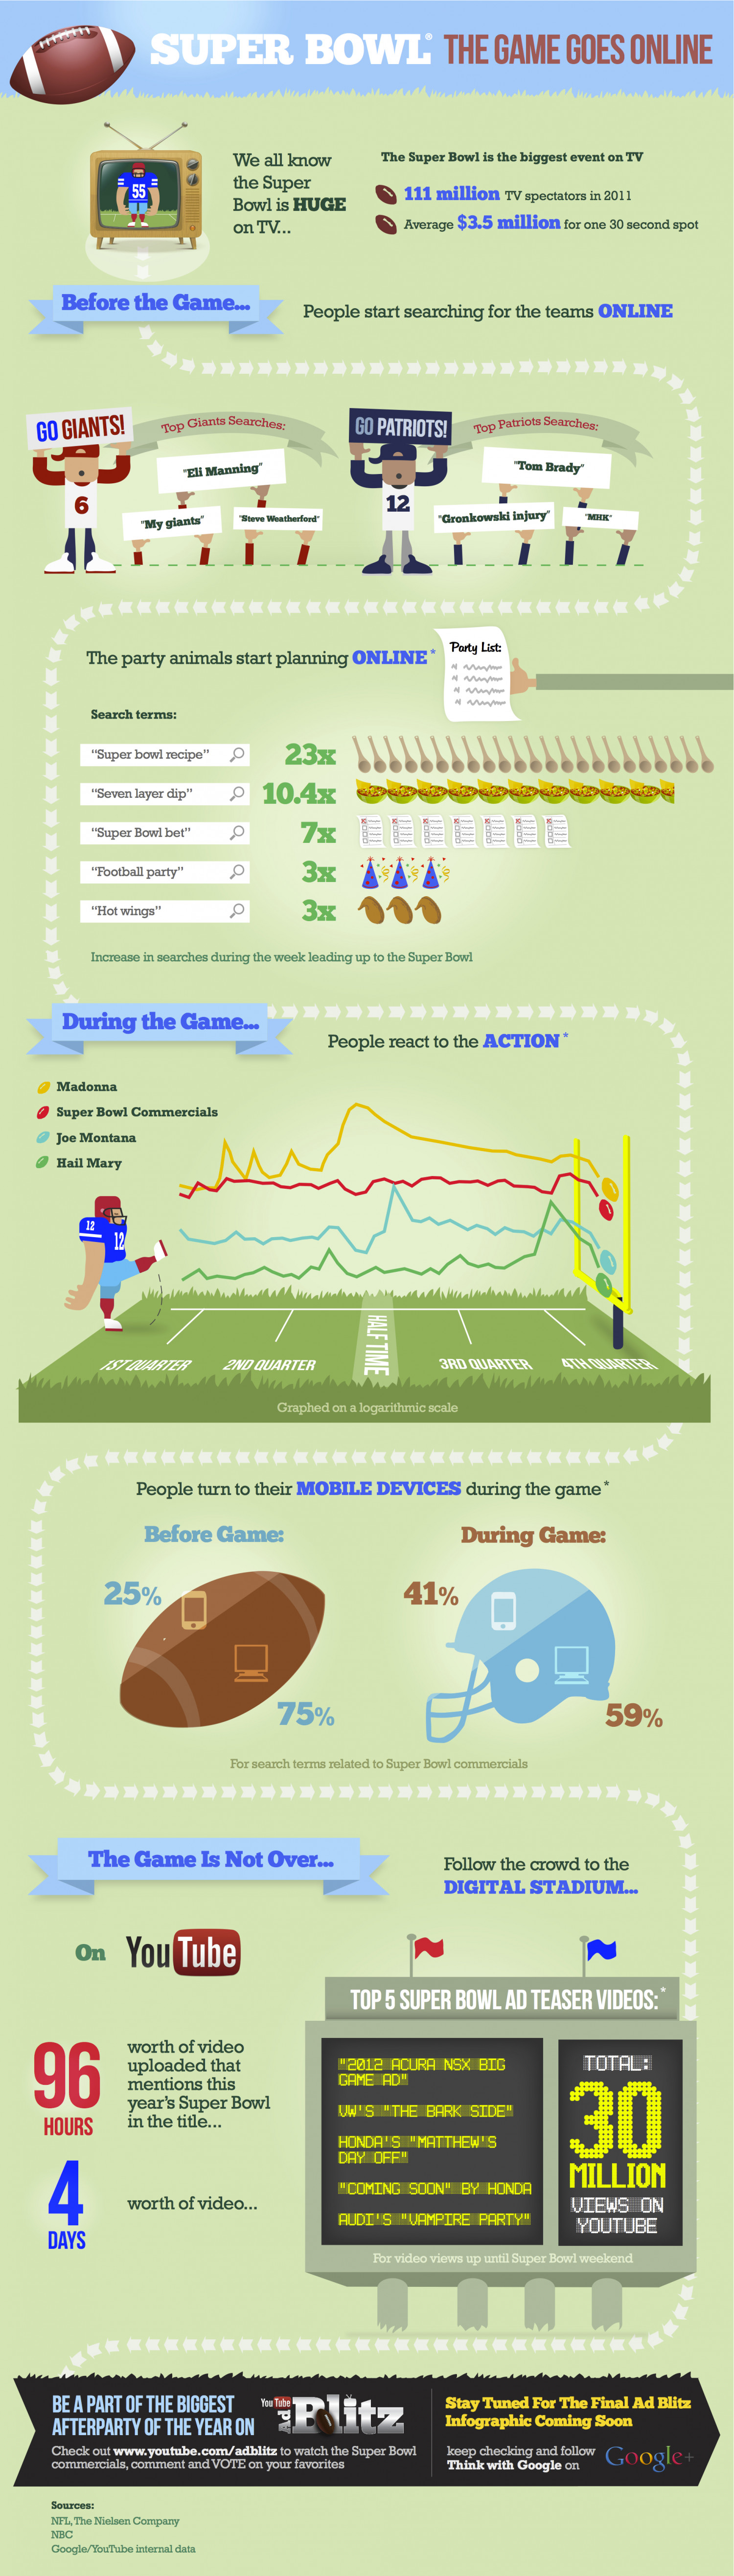 Super Bowl: The Game Goes Online Infographic